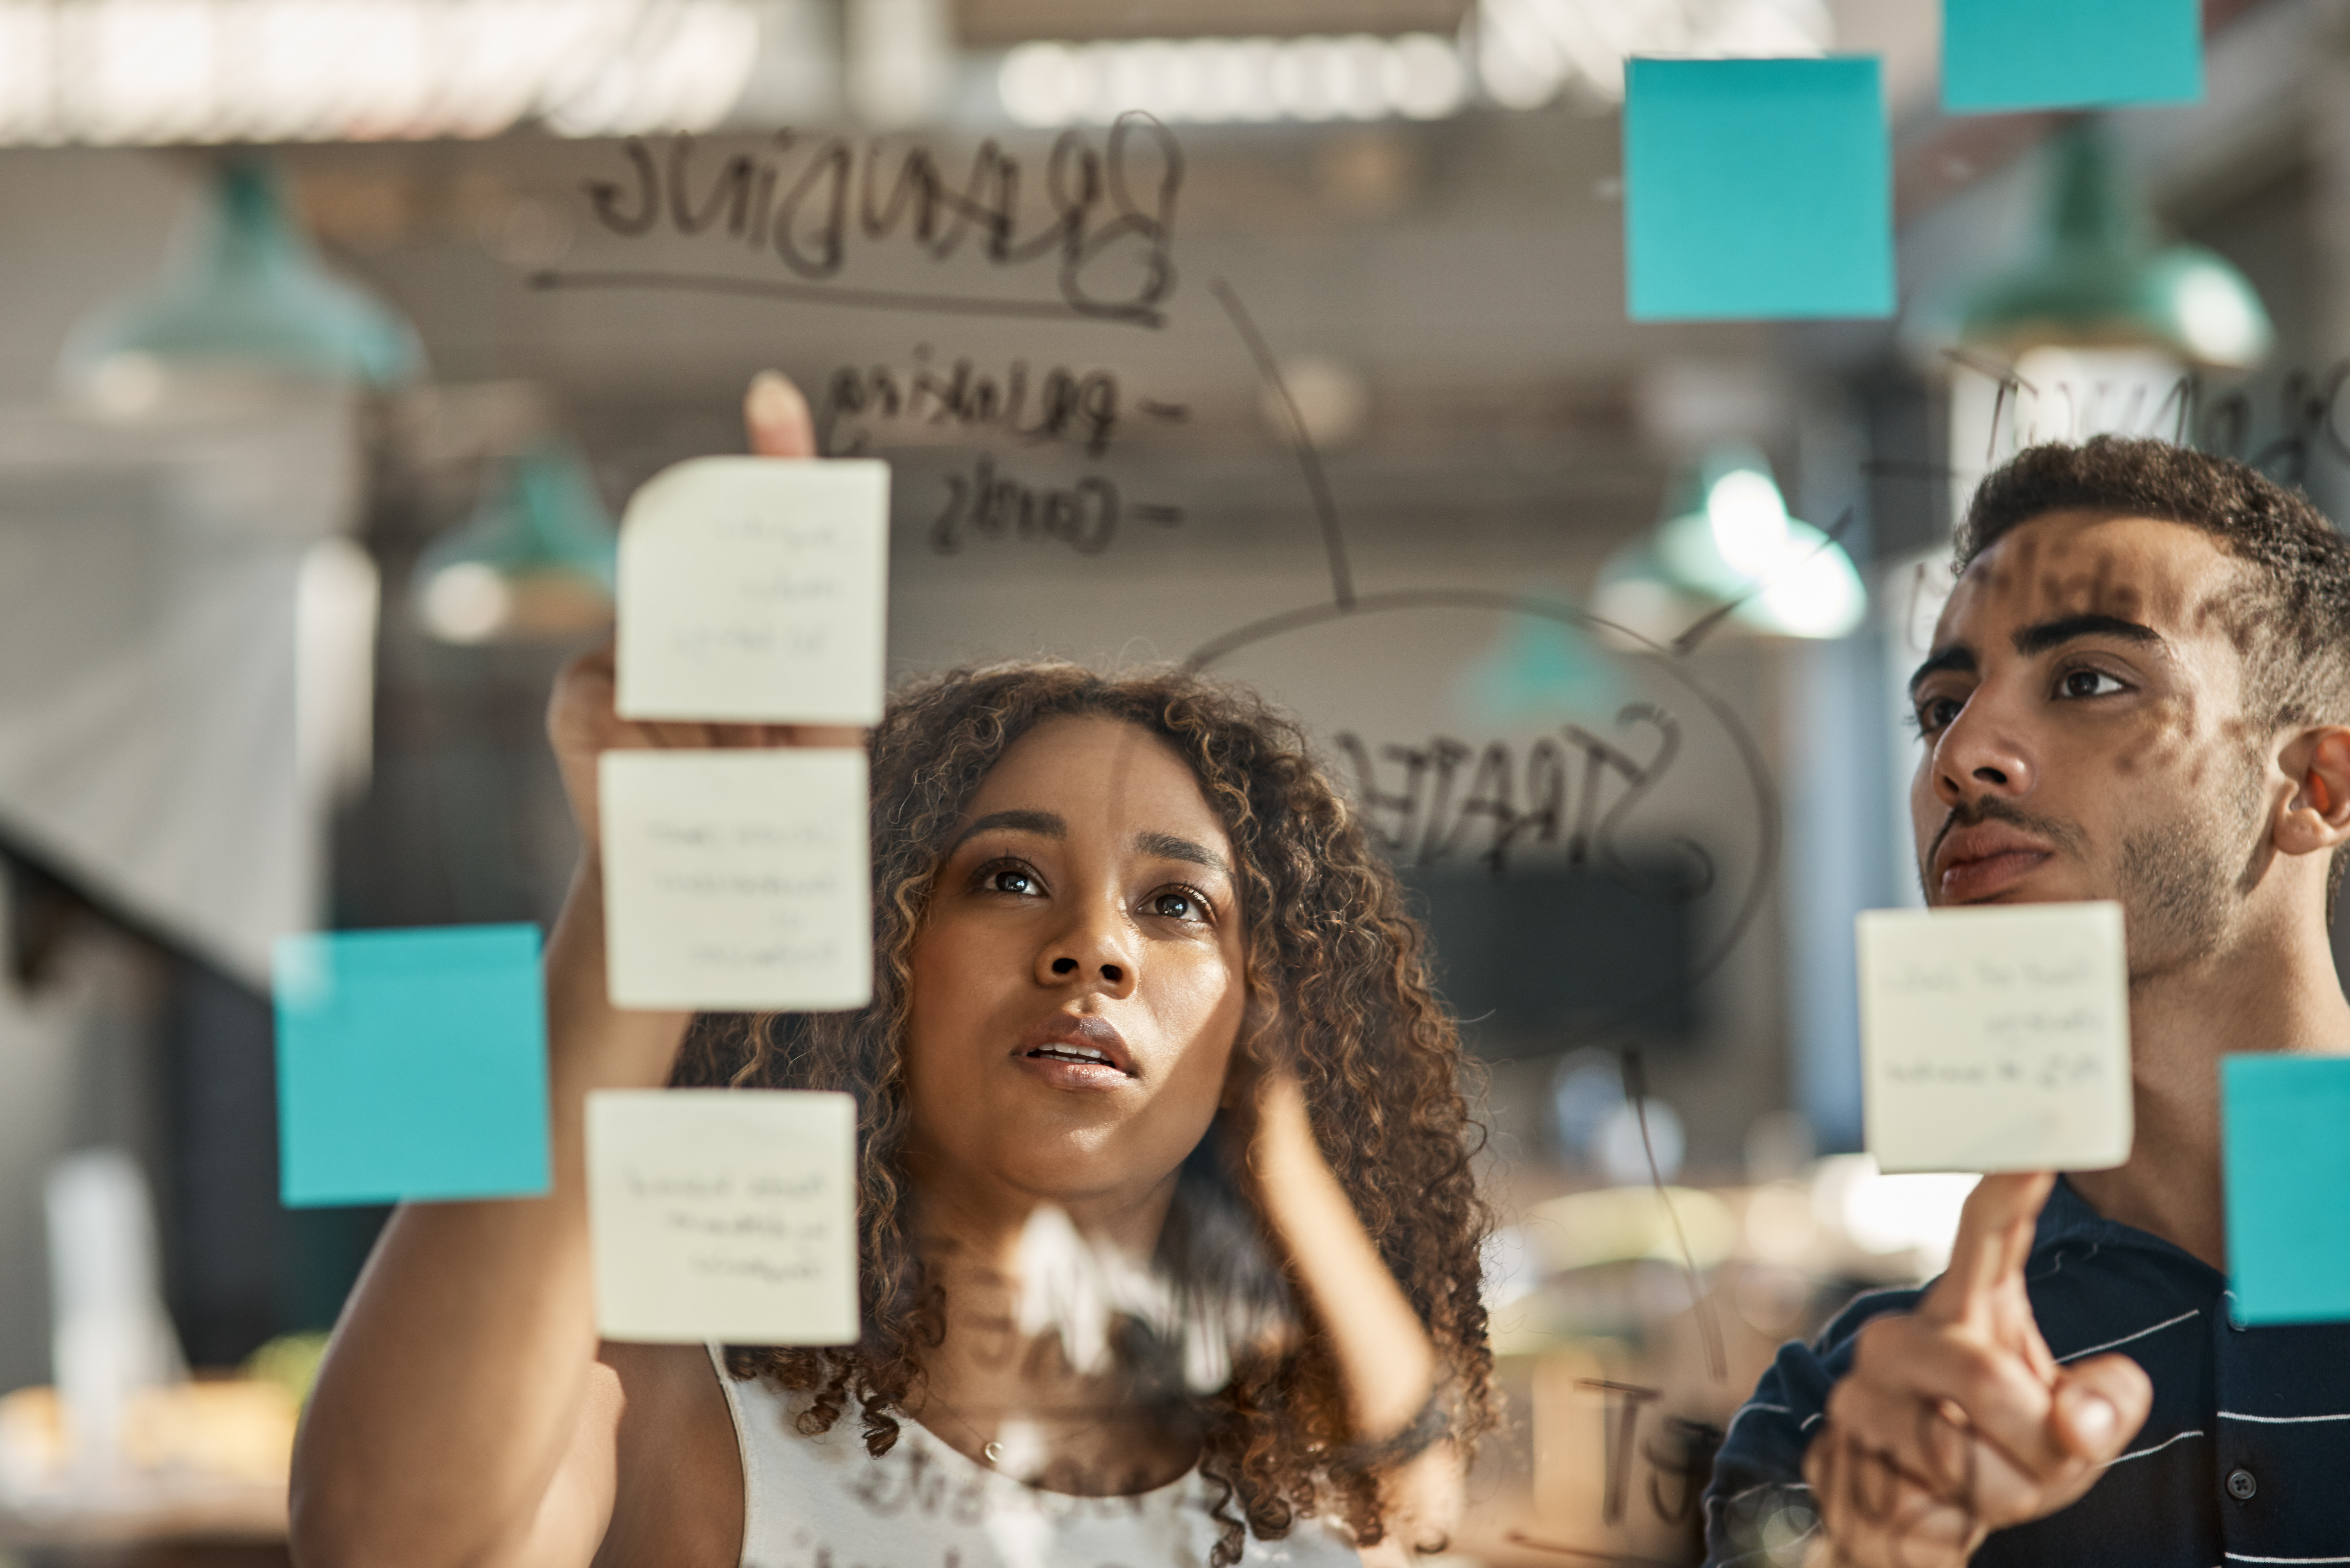 Man and woman in office collaborating on project by using sticky notes on a screen